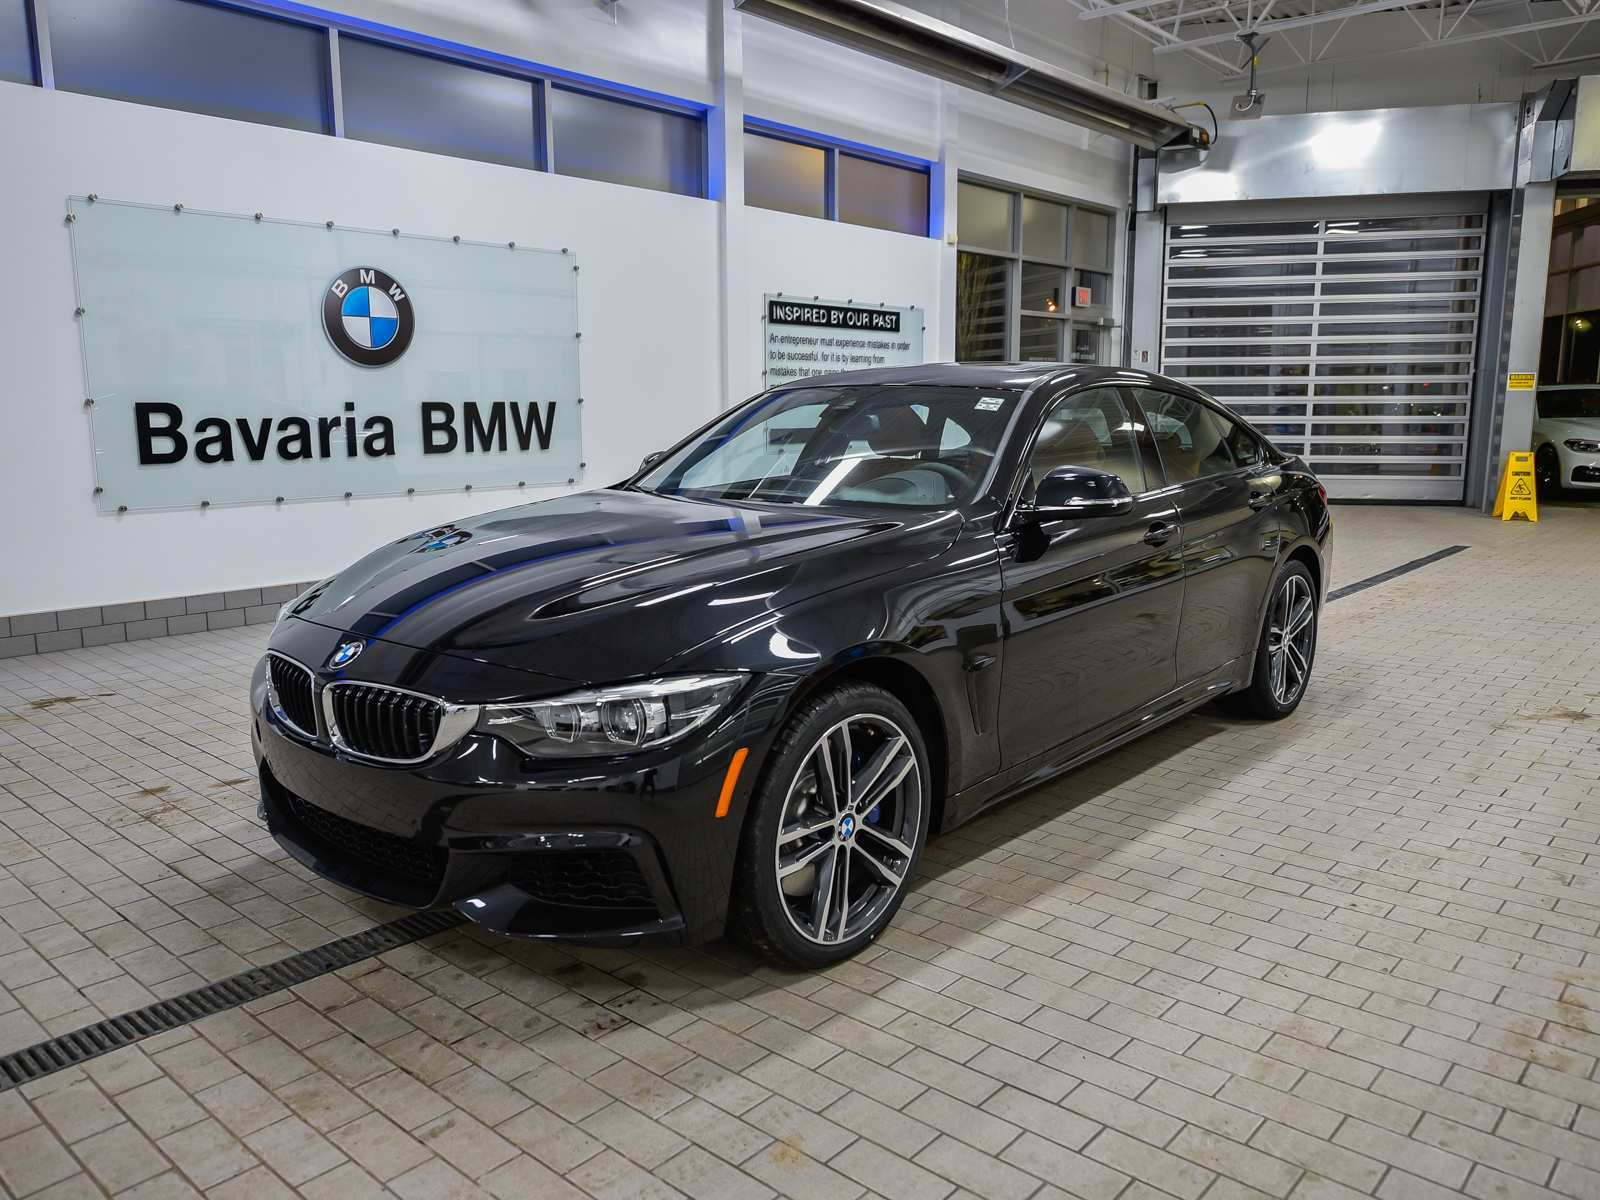 18 Best Review 2019 Bmw 440I Xdrive Gran Coupe Reviews for 2019 Bmw 440I Xdrive Gran Coupe